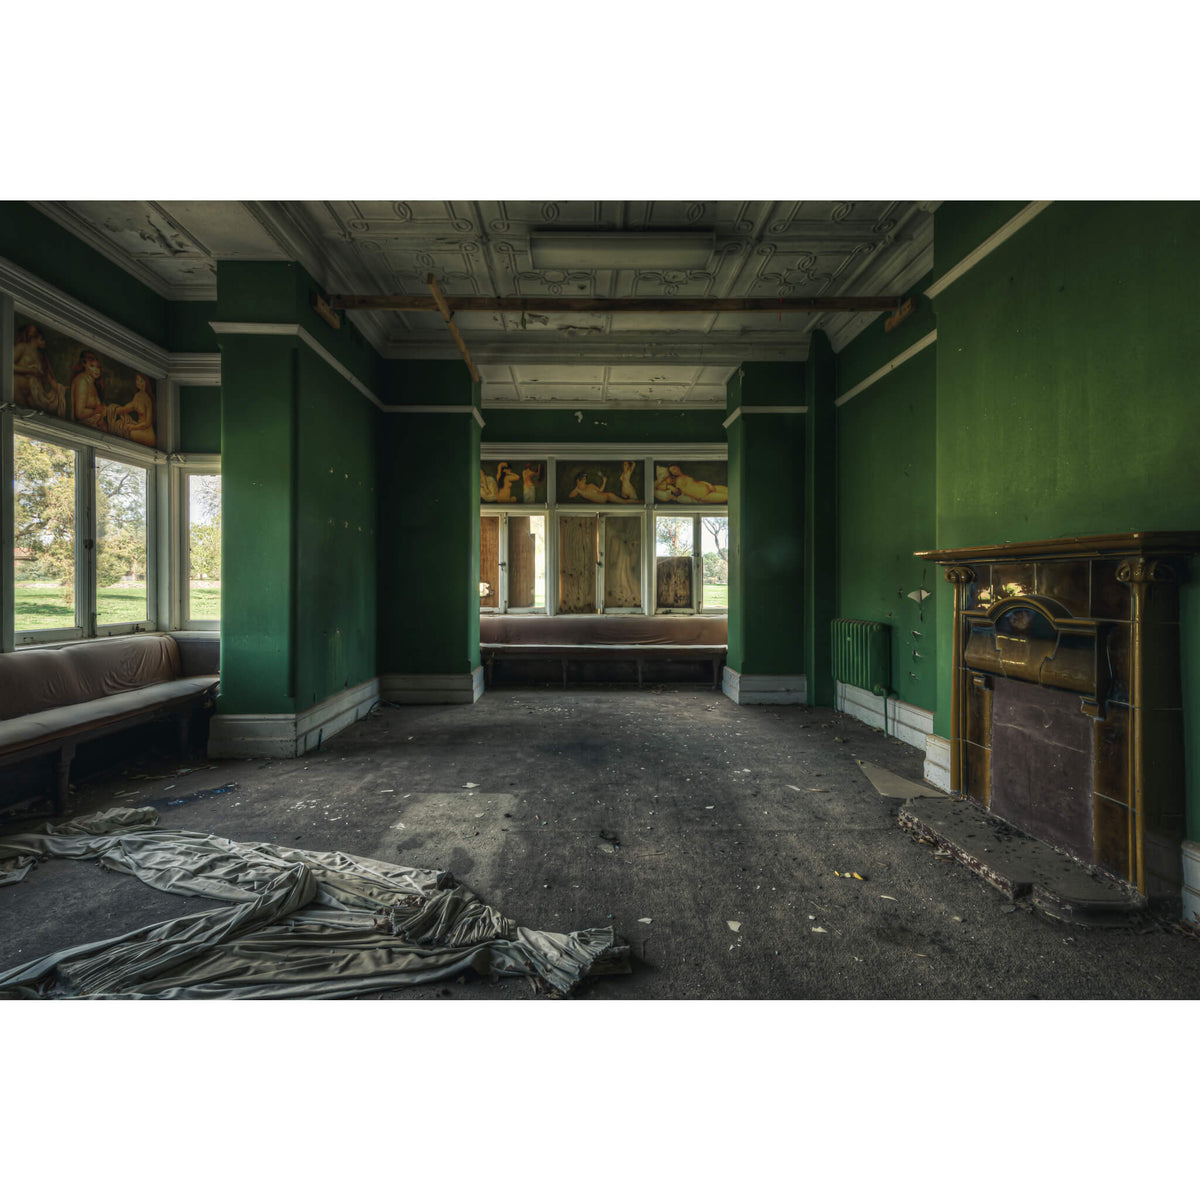 The Green Room | The Asylum Fine Art Print - Lost Collective Shop